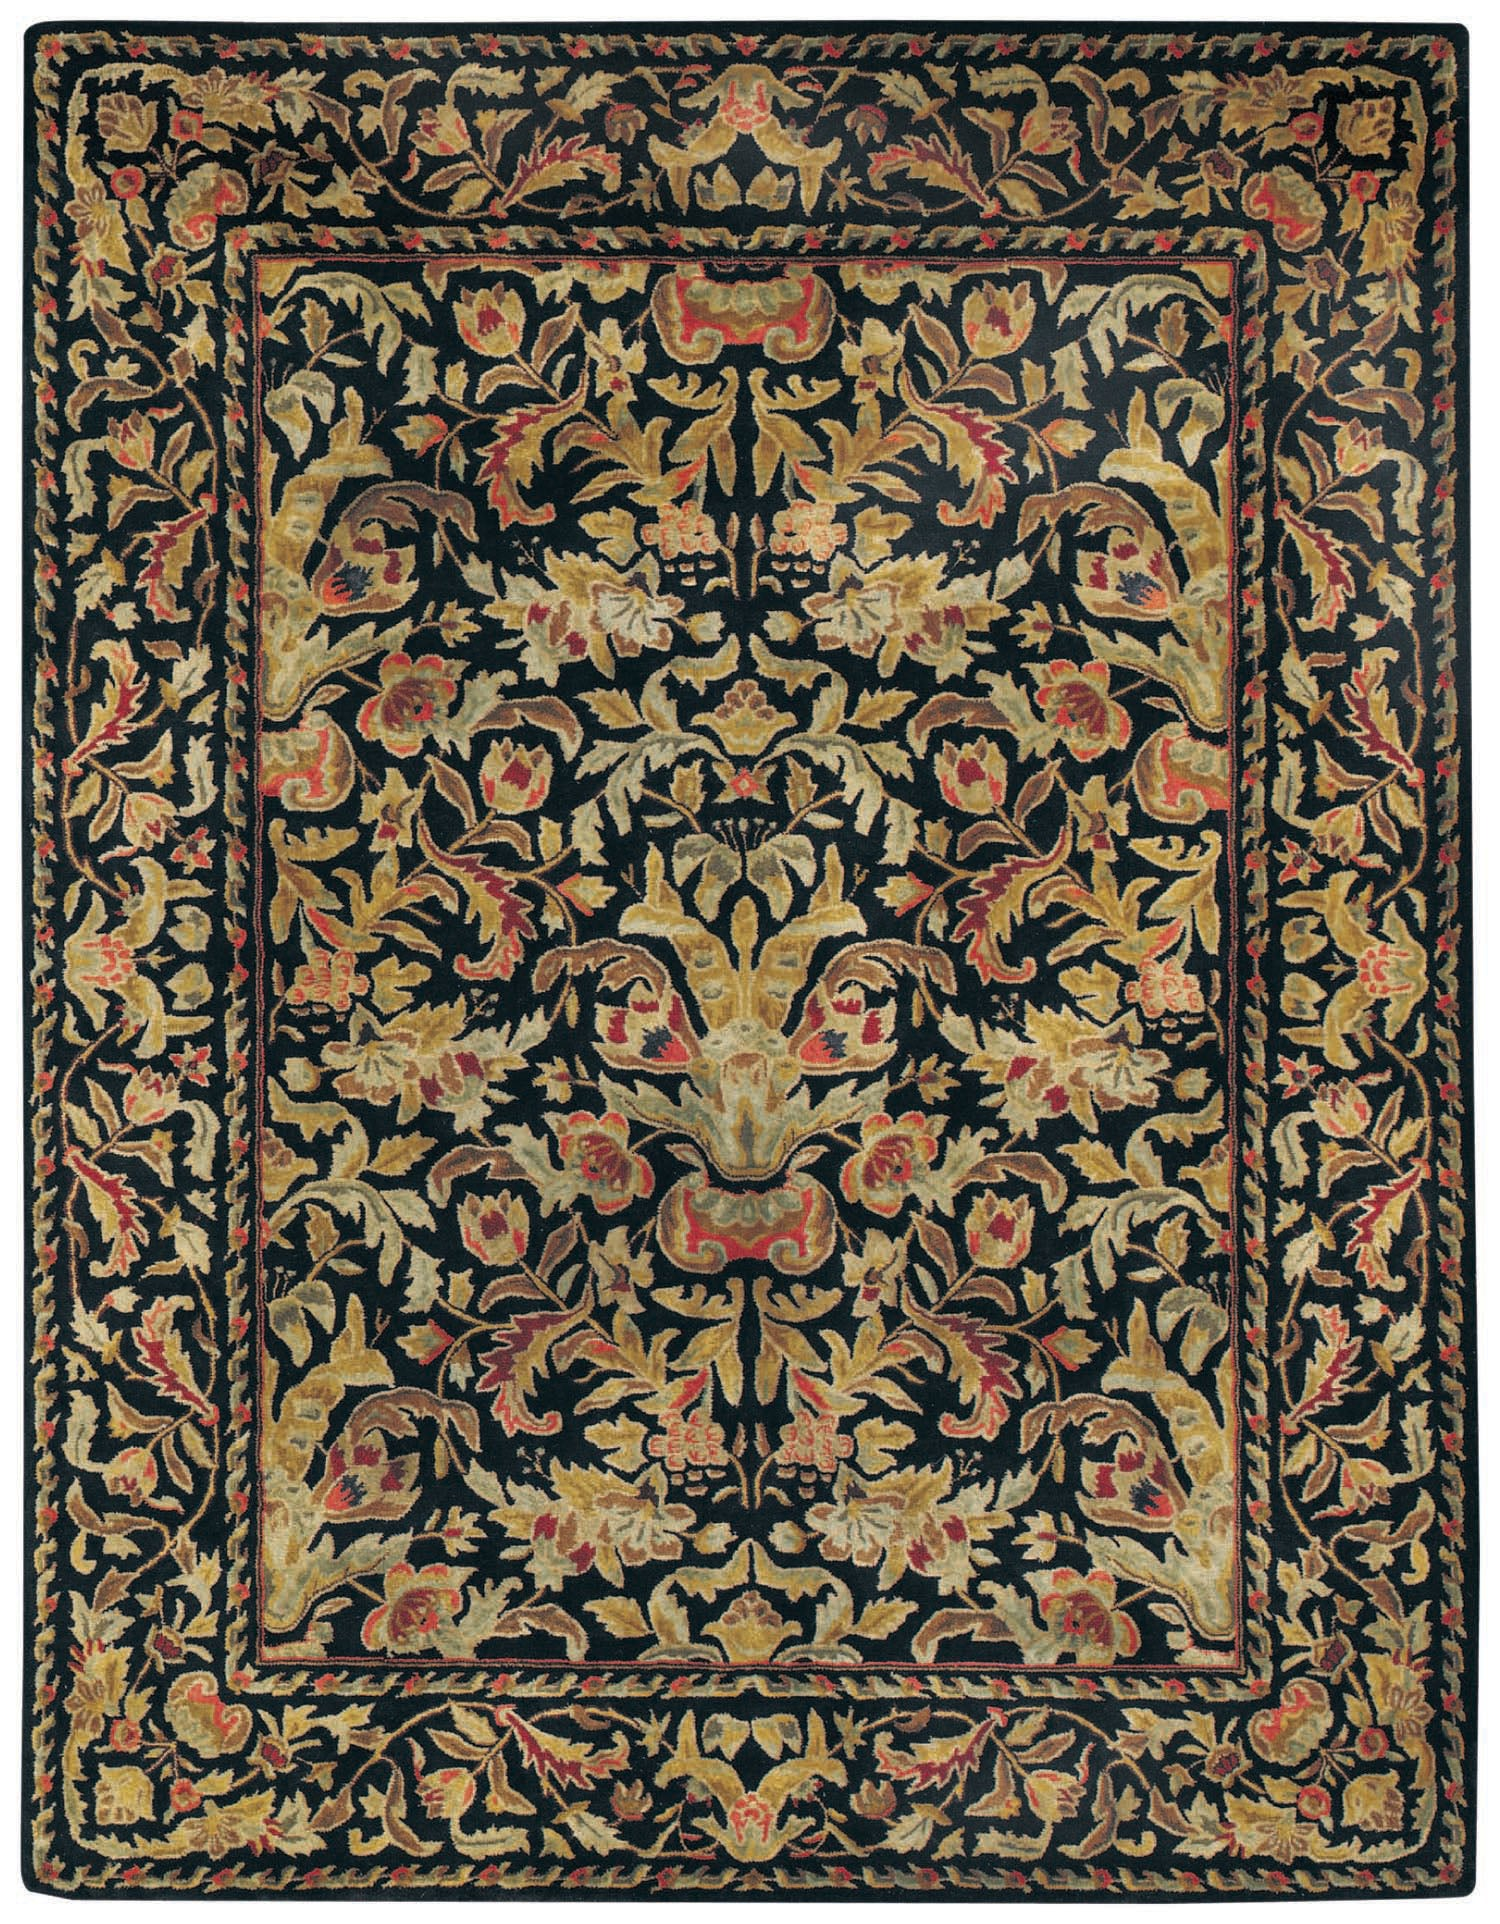 Capel Garden Farms 9250 Black 300 Area Rug main image